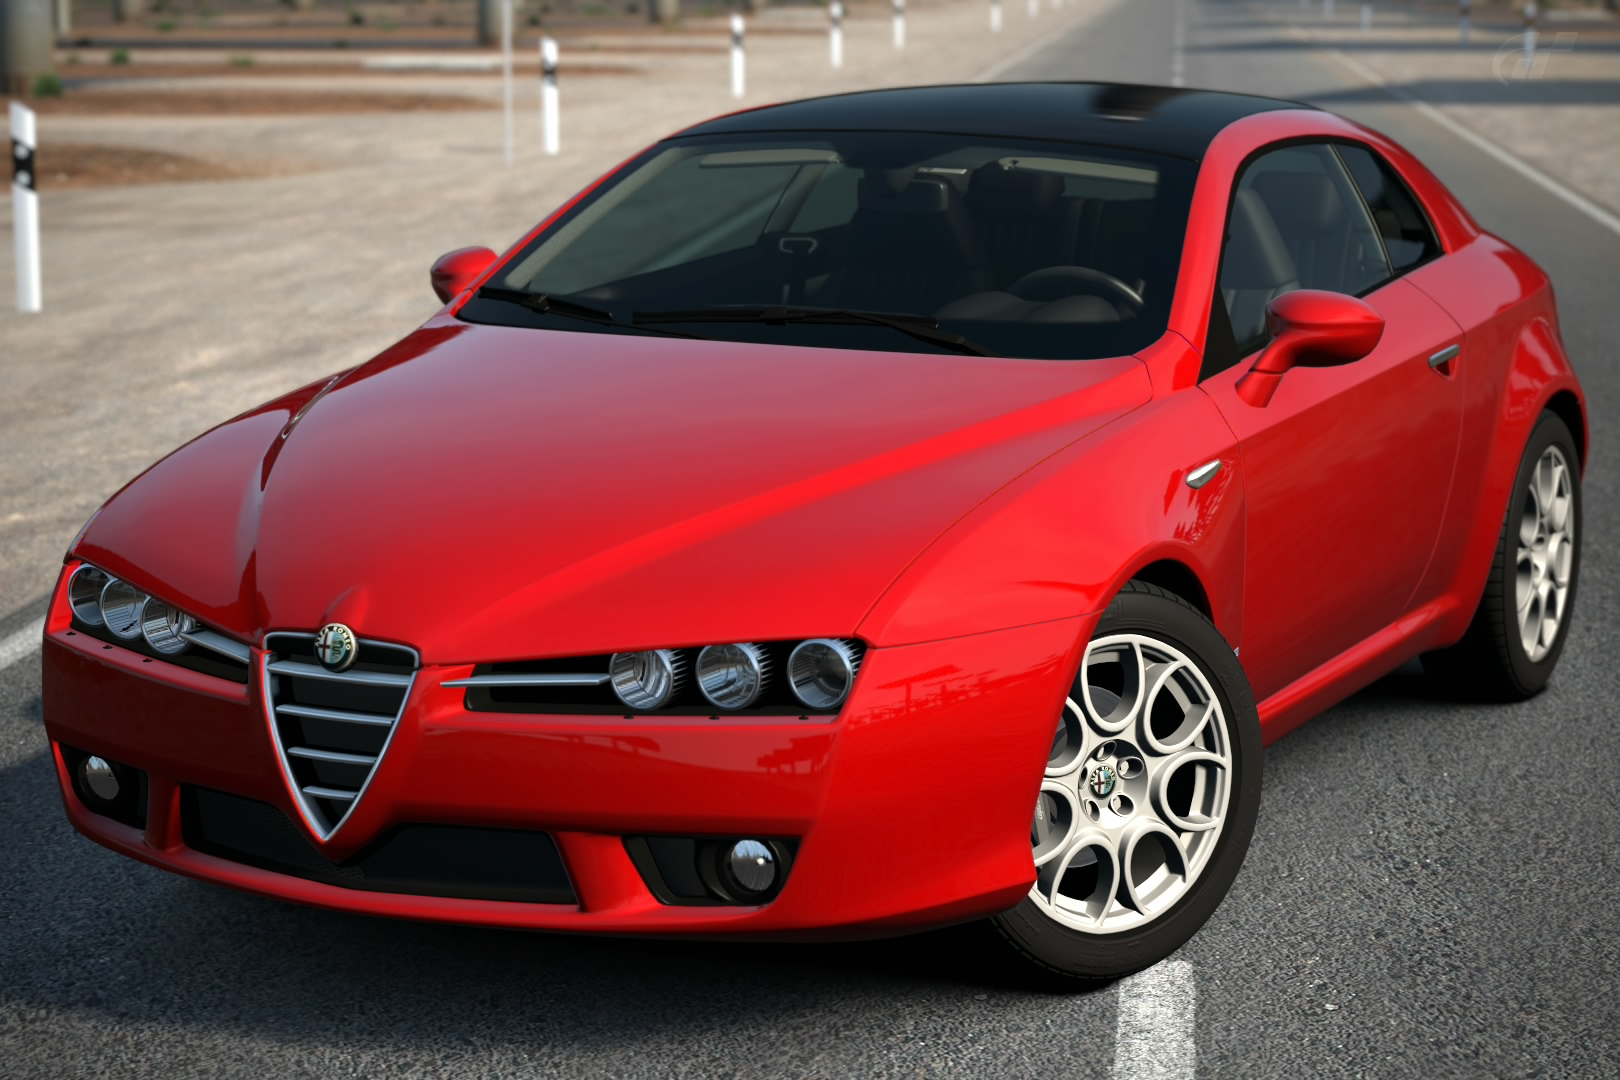 alfa romeo brera sky window 3 2 jts q4 39 06 gran turismo wiki fandom powered by wikia. Black Bedroom Furniture Sets. Home Design Ideas